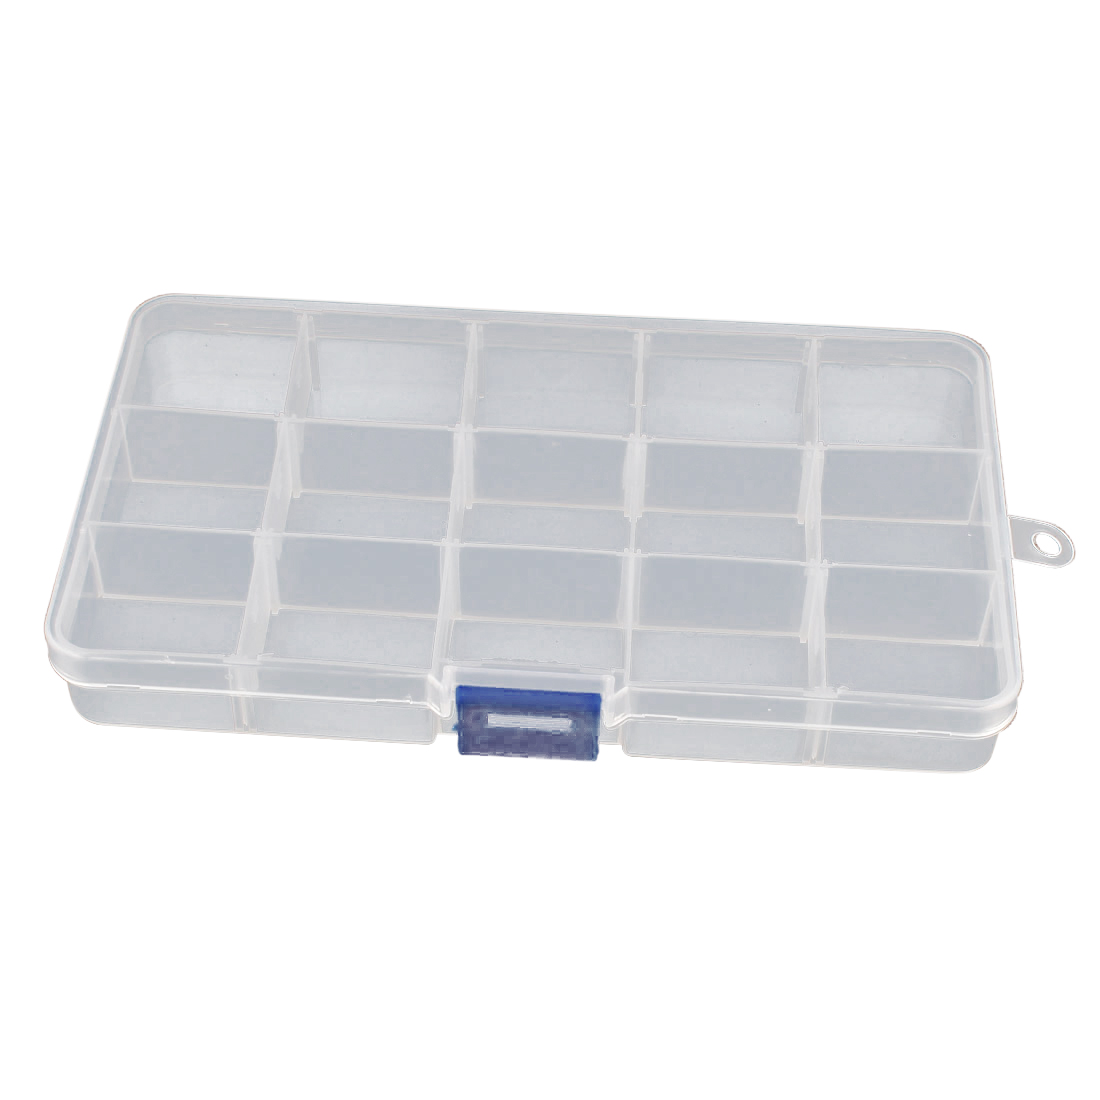 Electronic Components Tool 15 Slots Detachable Rectangle Plastic Storage Cases Boxes Organizer Holders